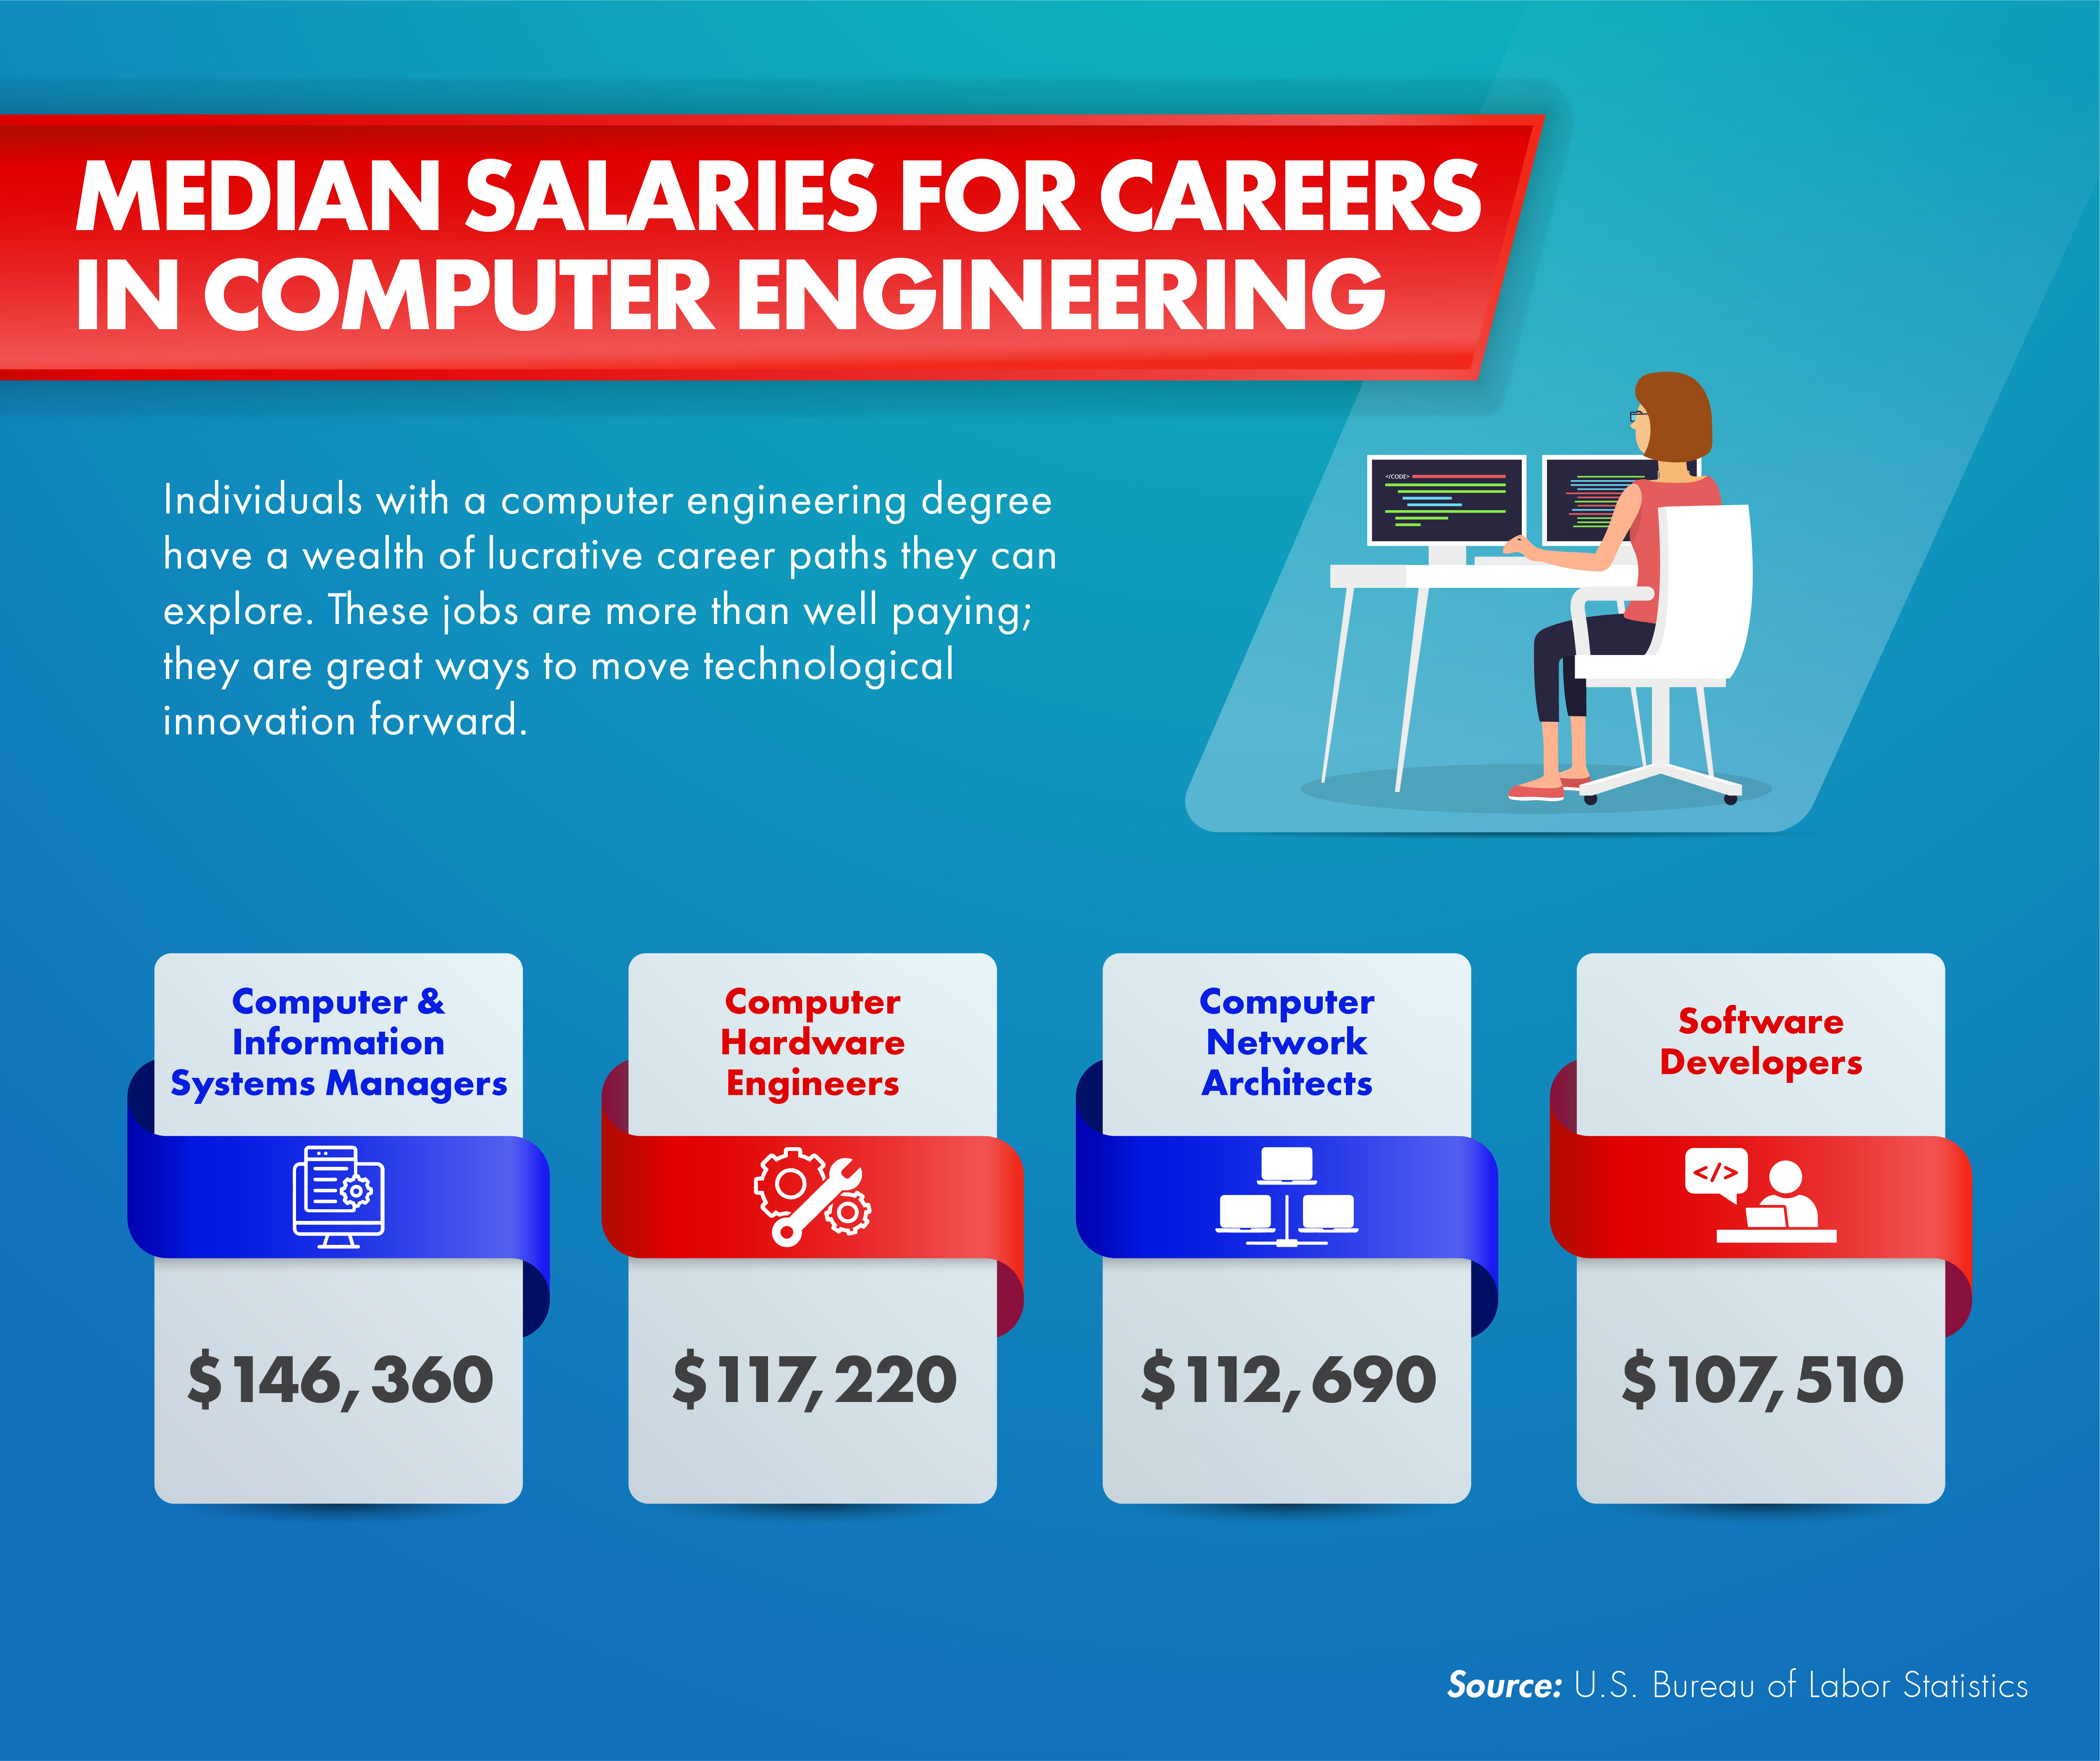 Four key careers in computer engineering and their salaries